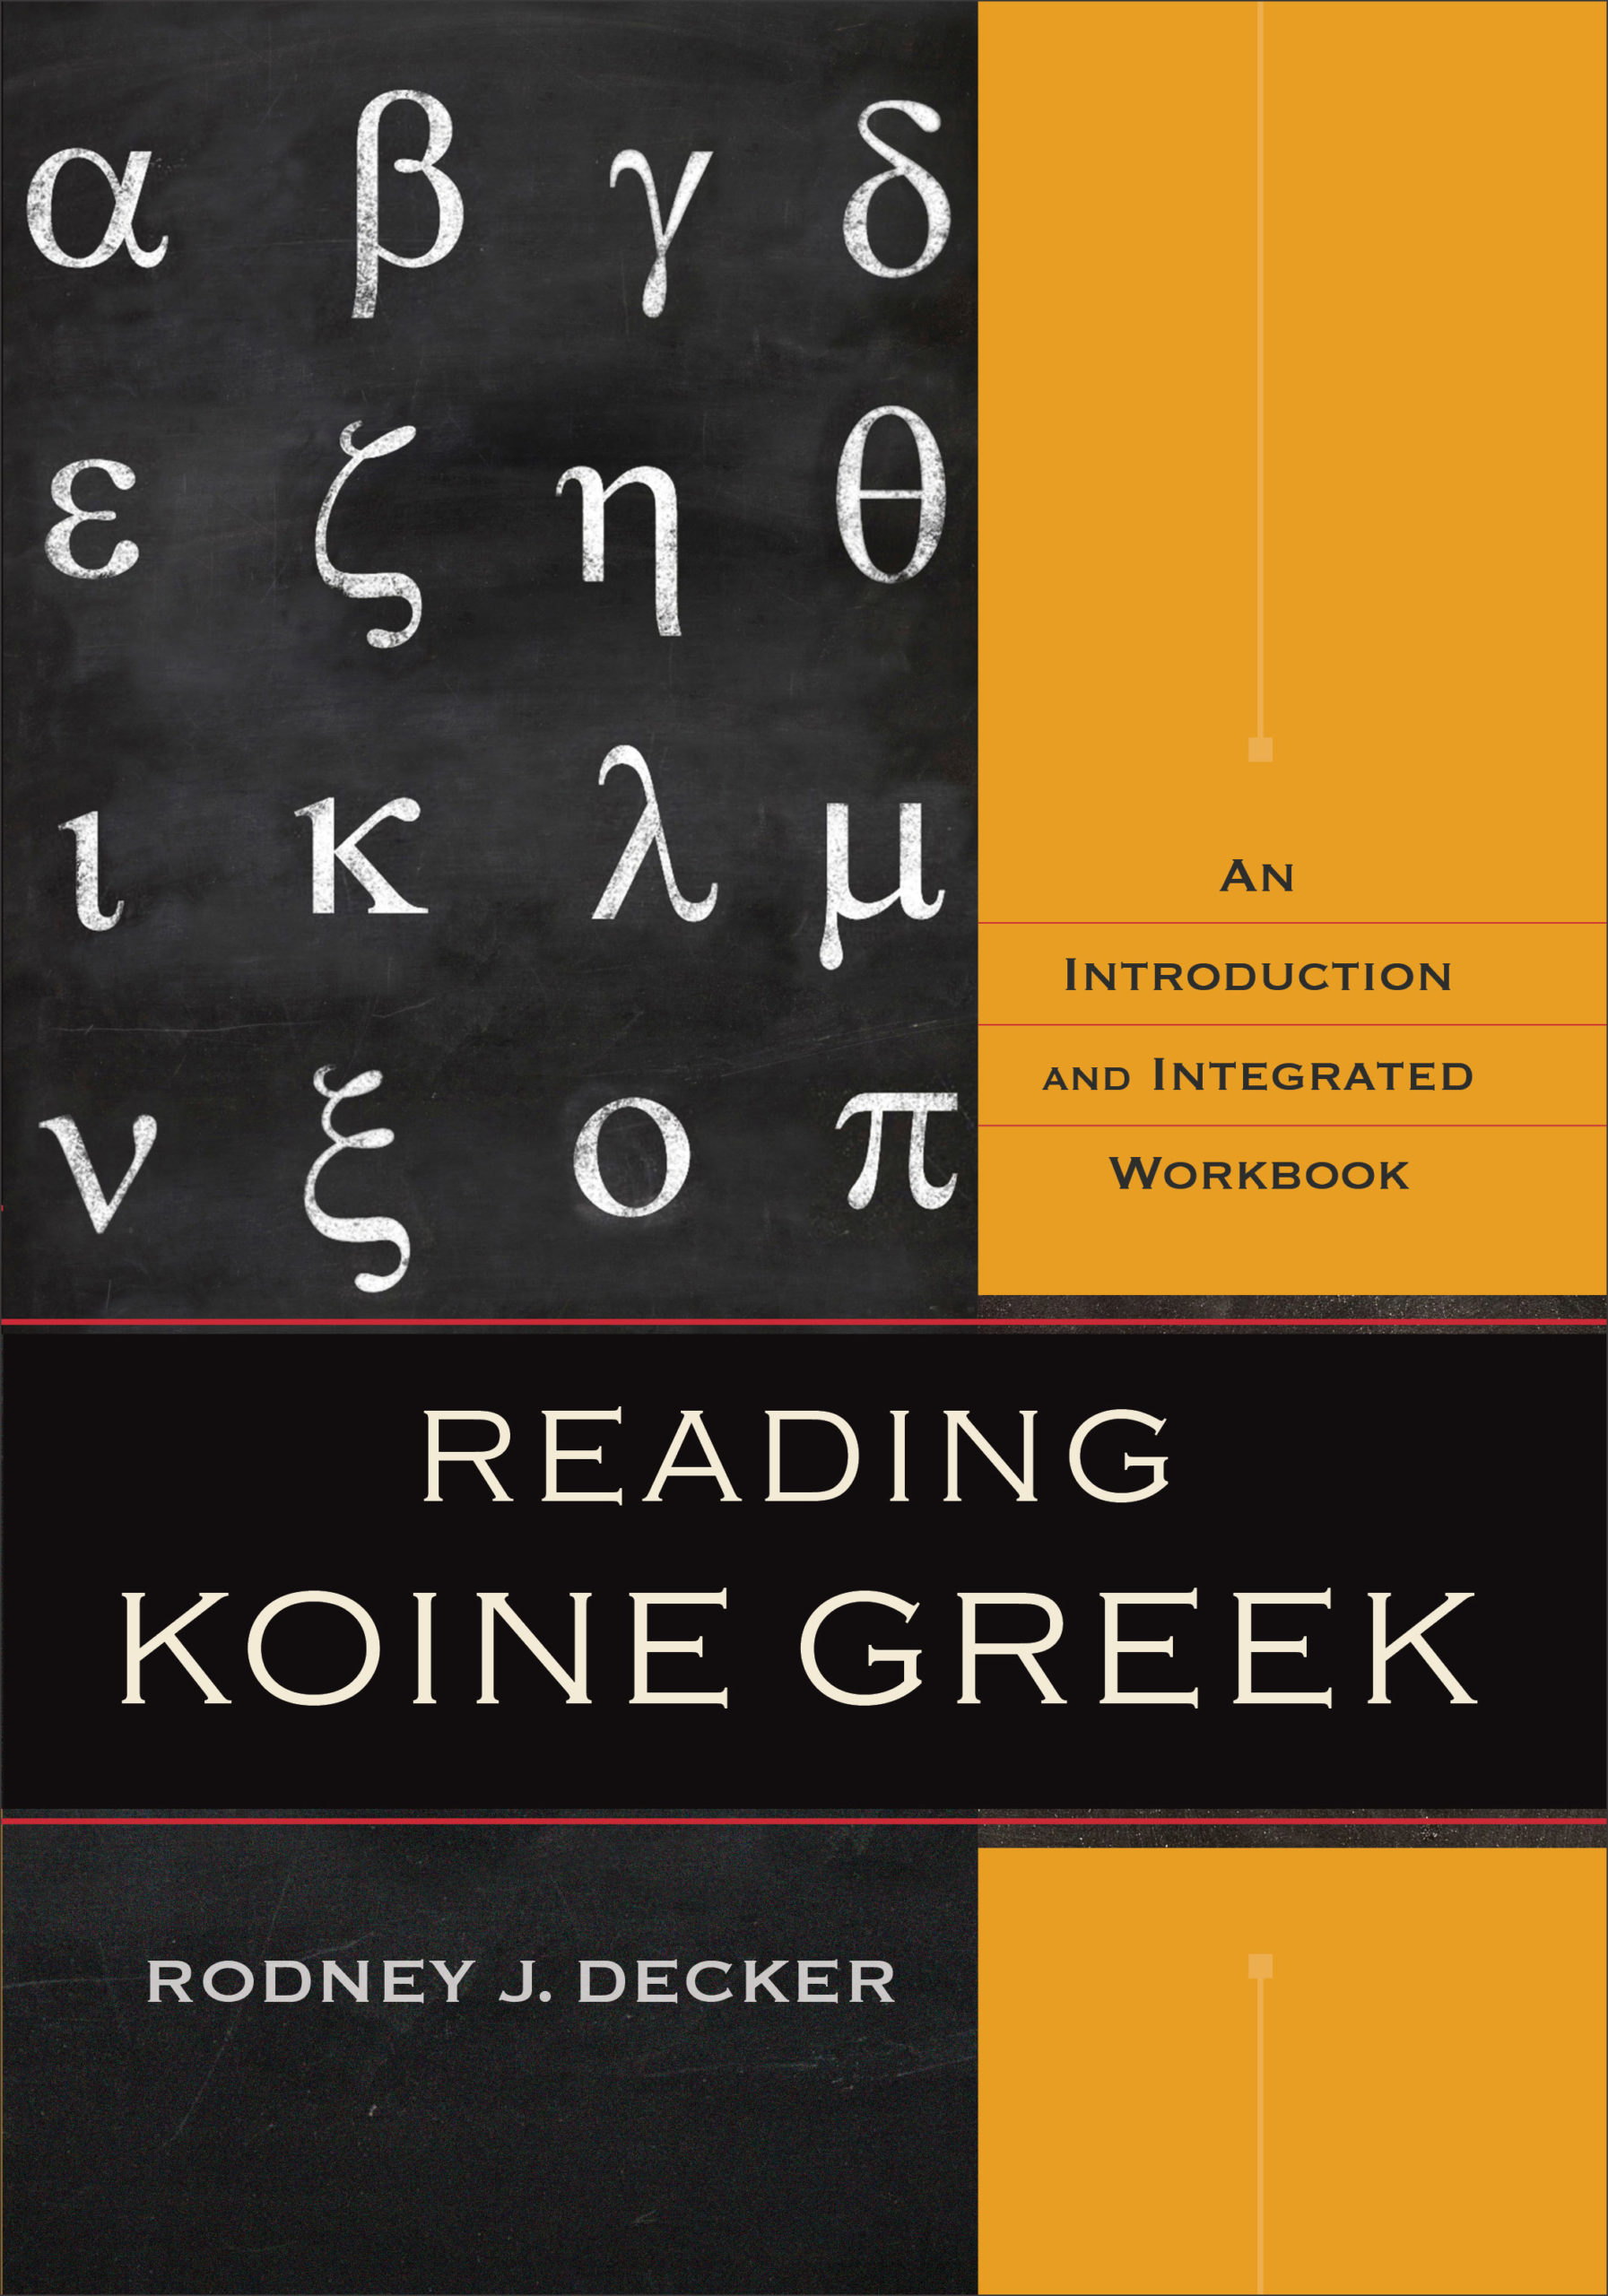 Reading Koine Greek: An Introduction and Integrated Workbook book cover